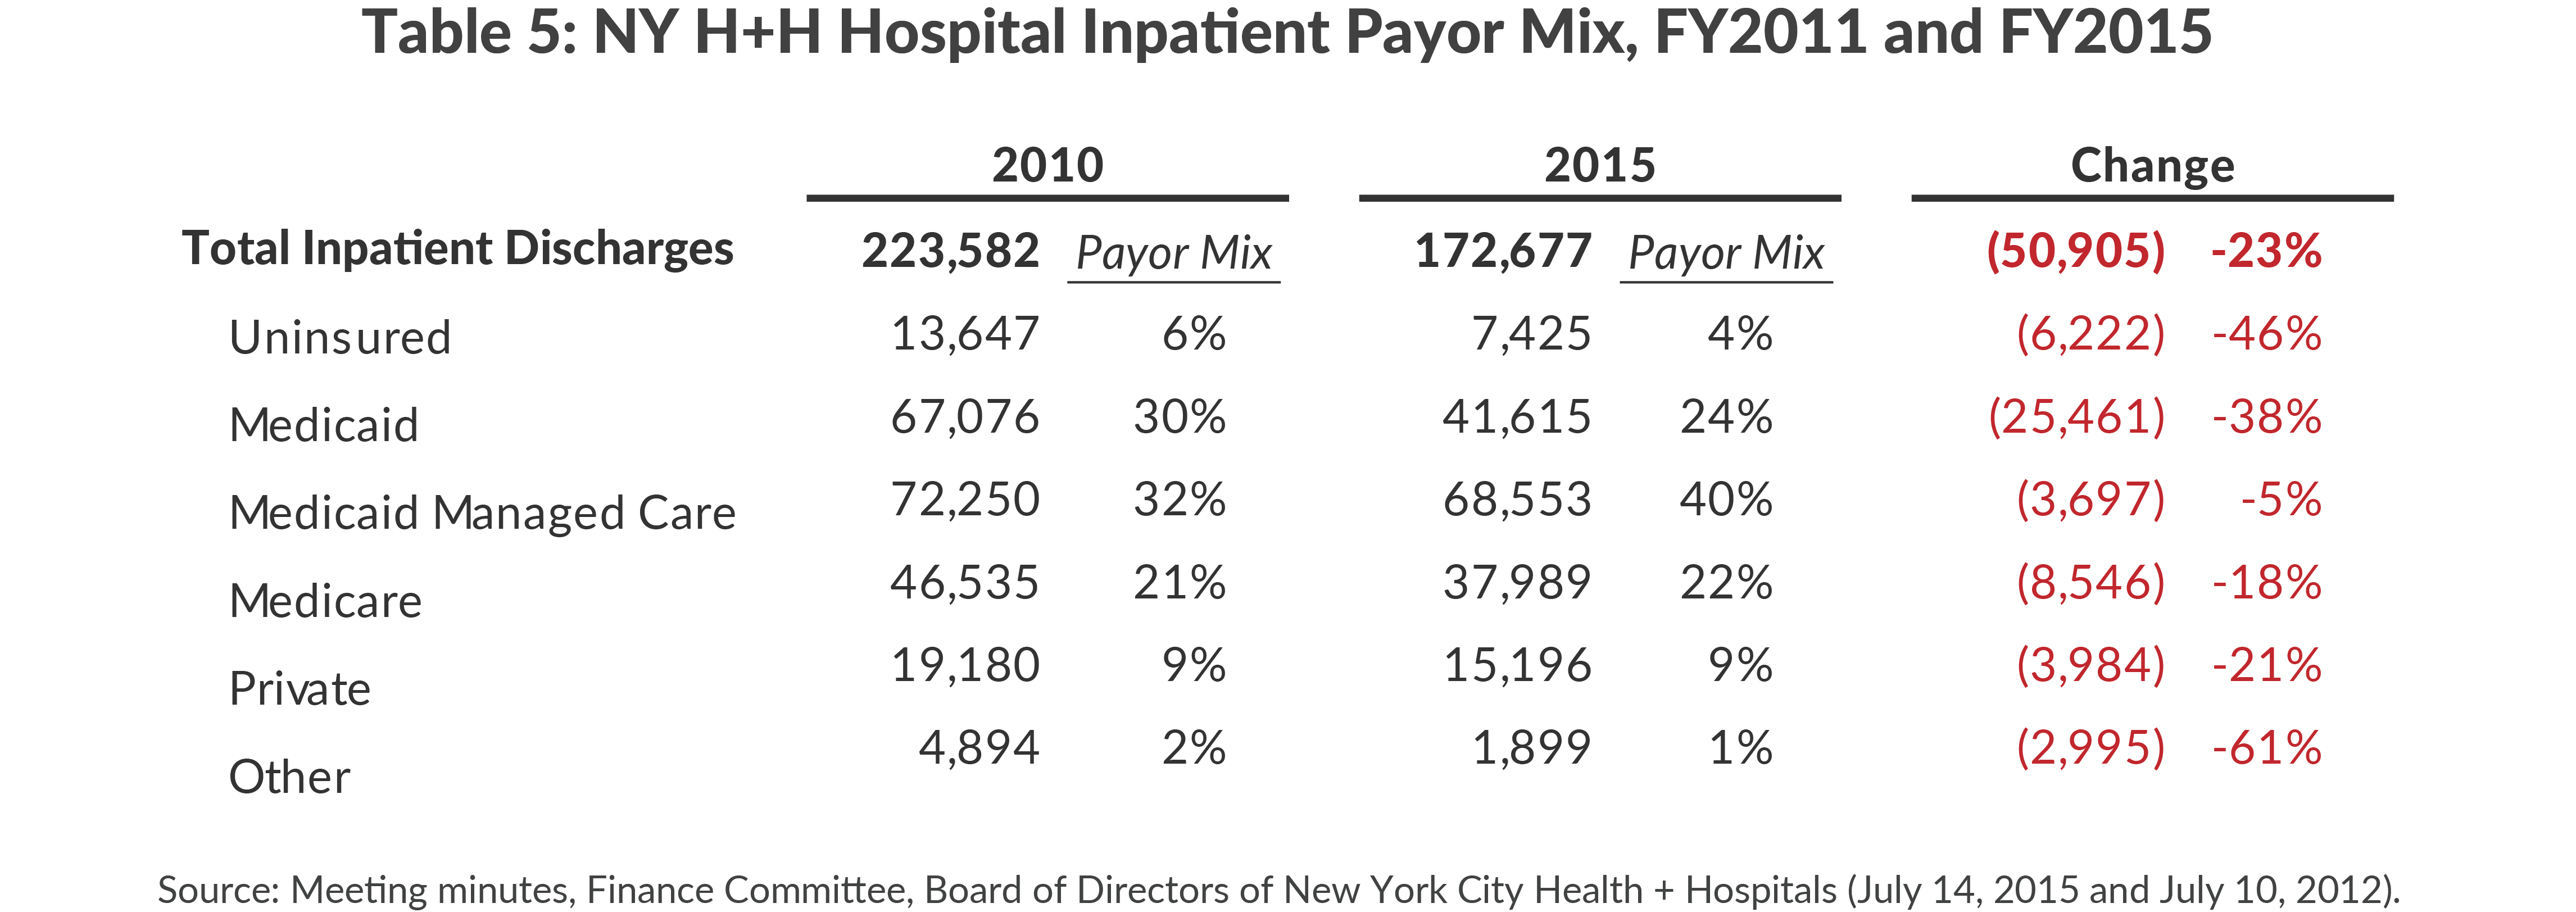 Table 5: H+H Hospital Inpatient Payor Mix, FY2011 and FY2015